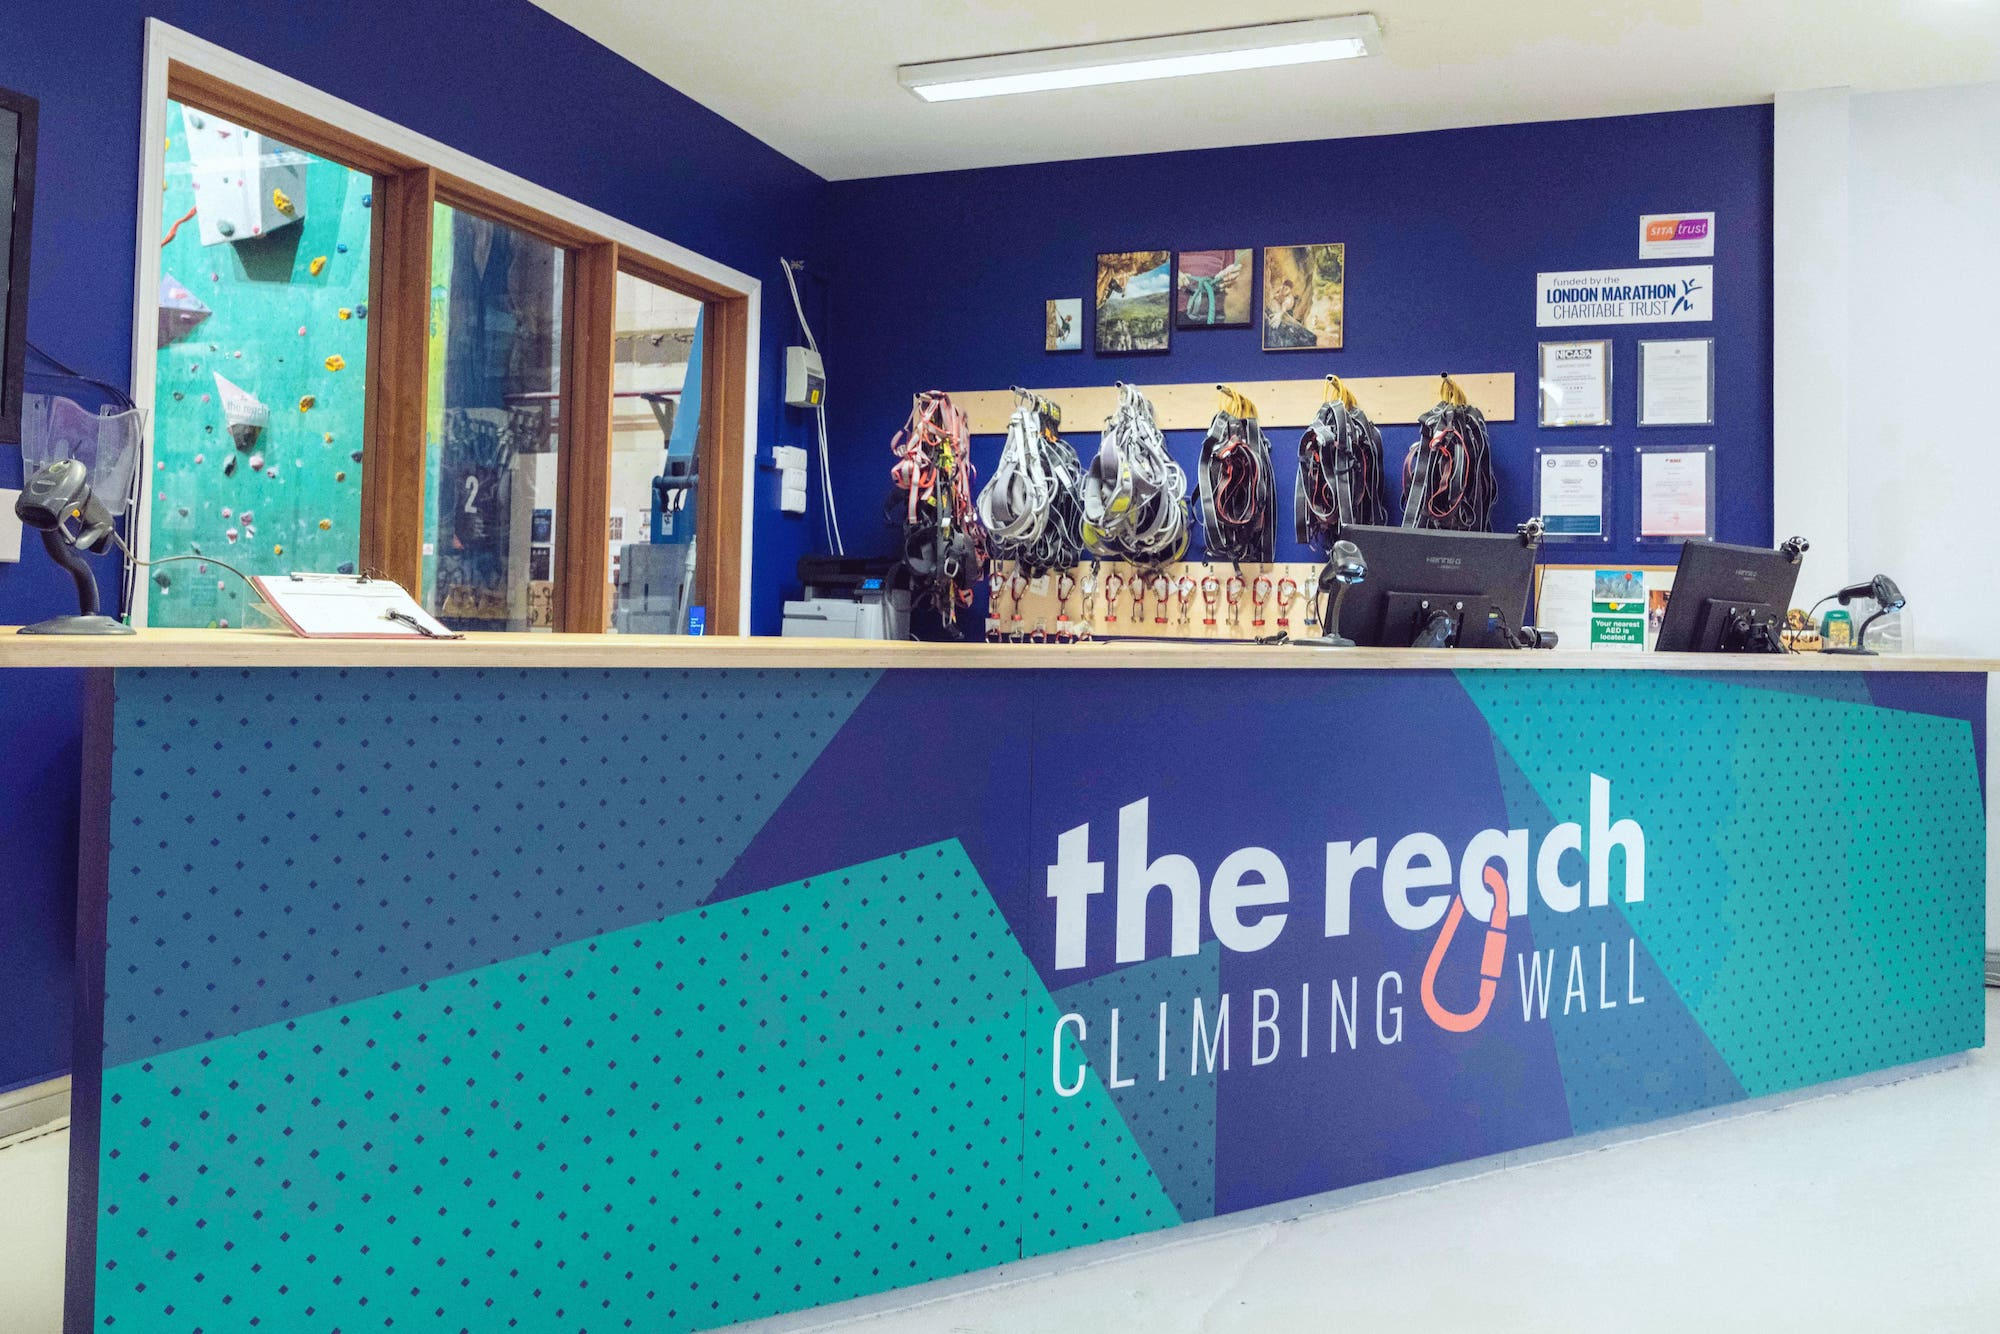 We worked with The Reach to create a new look for their well-established climbing centre. Developing a strategy to promote their site as the home of South London Climbing. We worked sensitively through team workshops to uncover solutions that would make a difference. Producing a new website, large format print and video content.